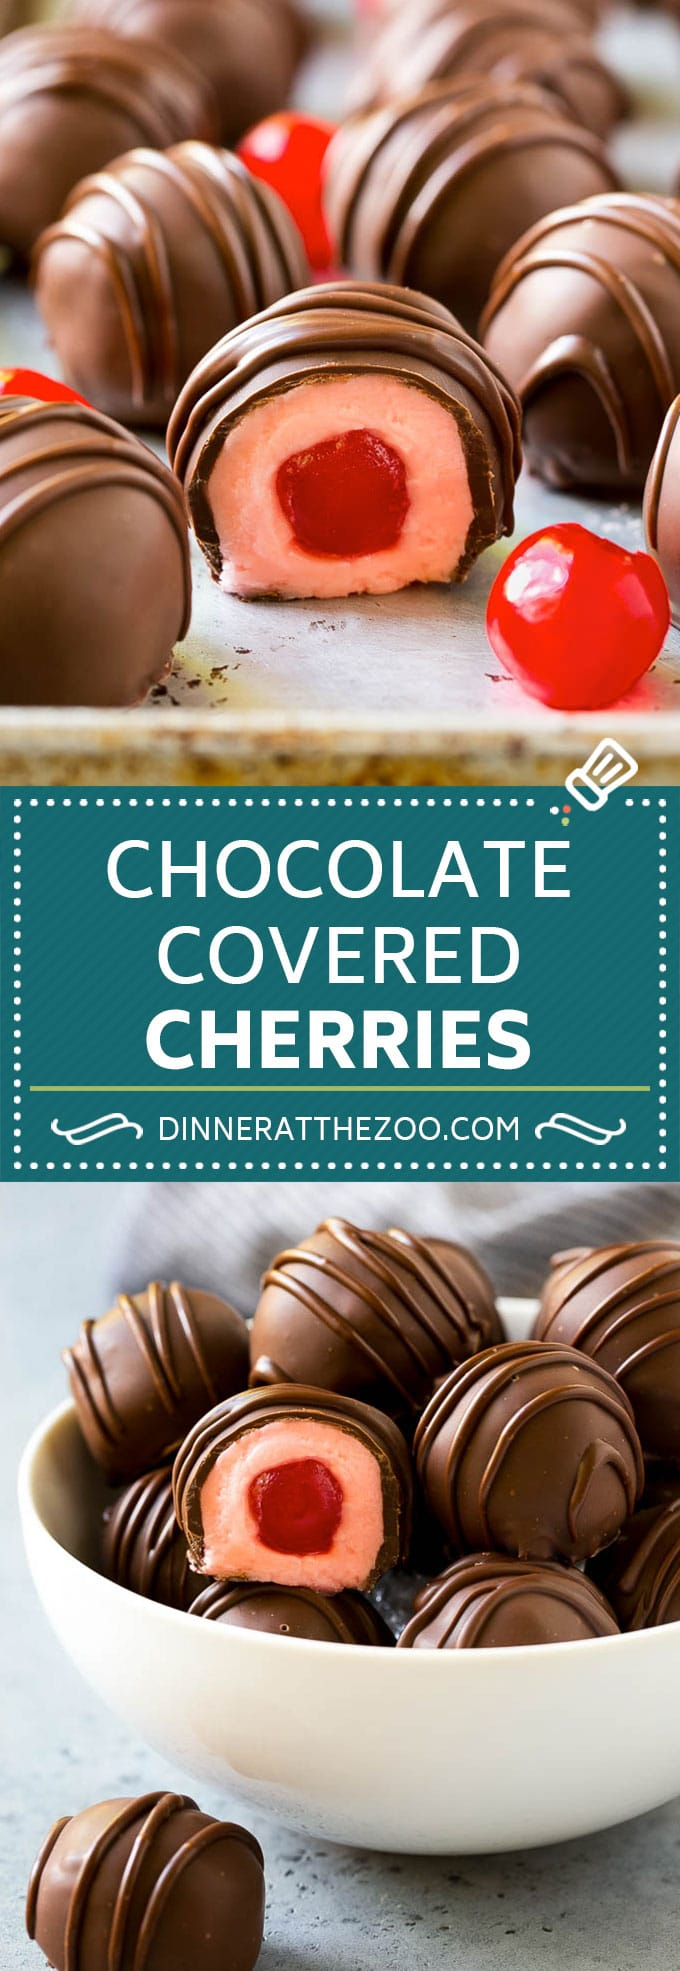 Chocolate Covered Cherries Recipe | Cherry Cordials | Cherry Candy #chocolate #candy #dessert #cherry #sweets #dinneratthezoo